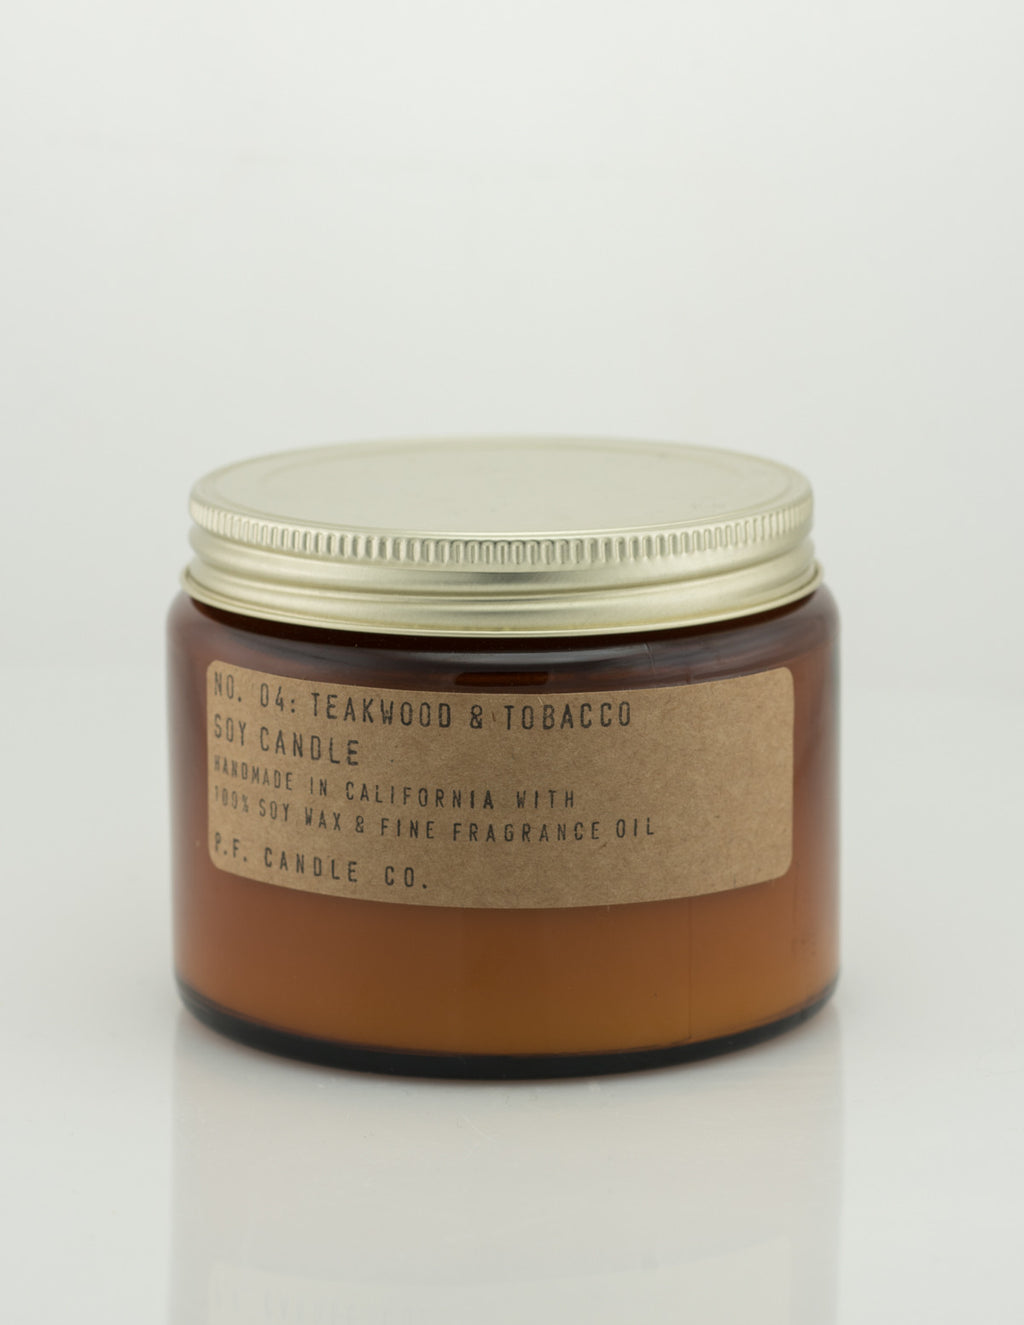 Pf Candle Co - Teakwood And Tobacco 14oz Candle